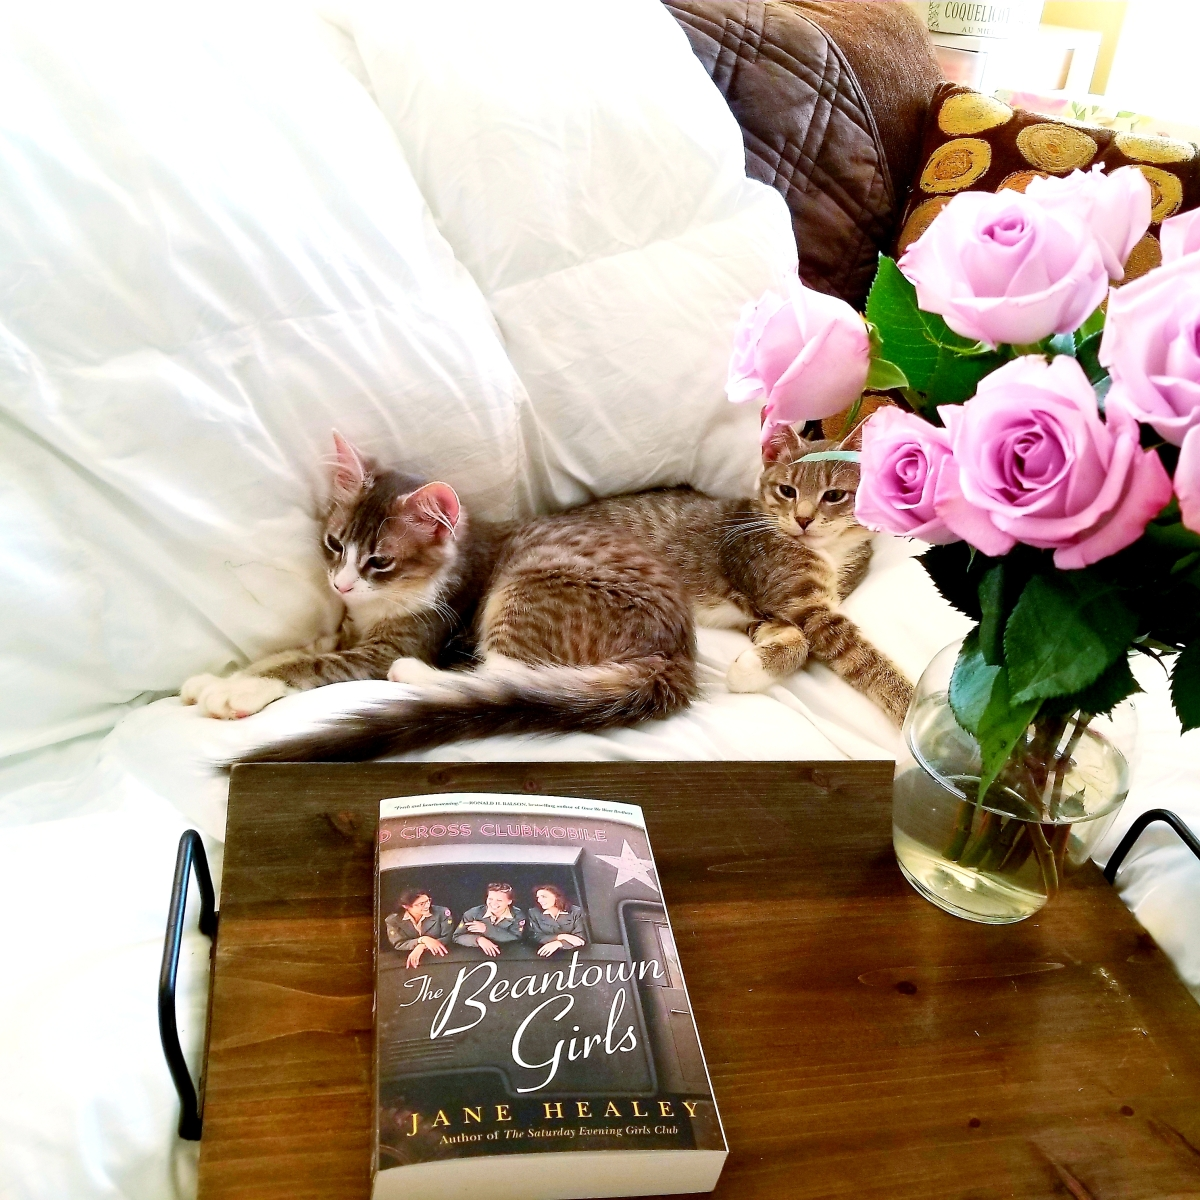 The Beantown Girls by Jane Healey #bookreview #tarheelreader #thrbeantown @healeyjane @amazonpub @annmarienieves #thebeantowngirls